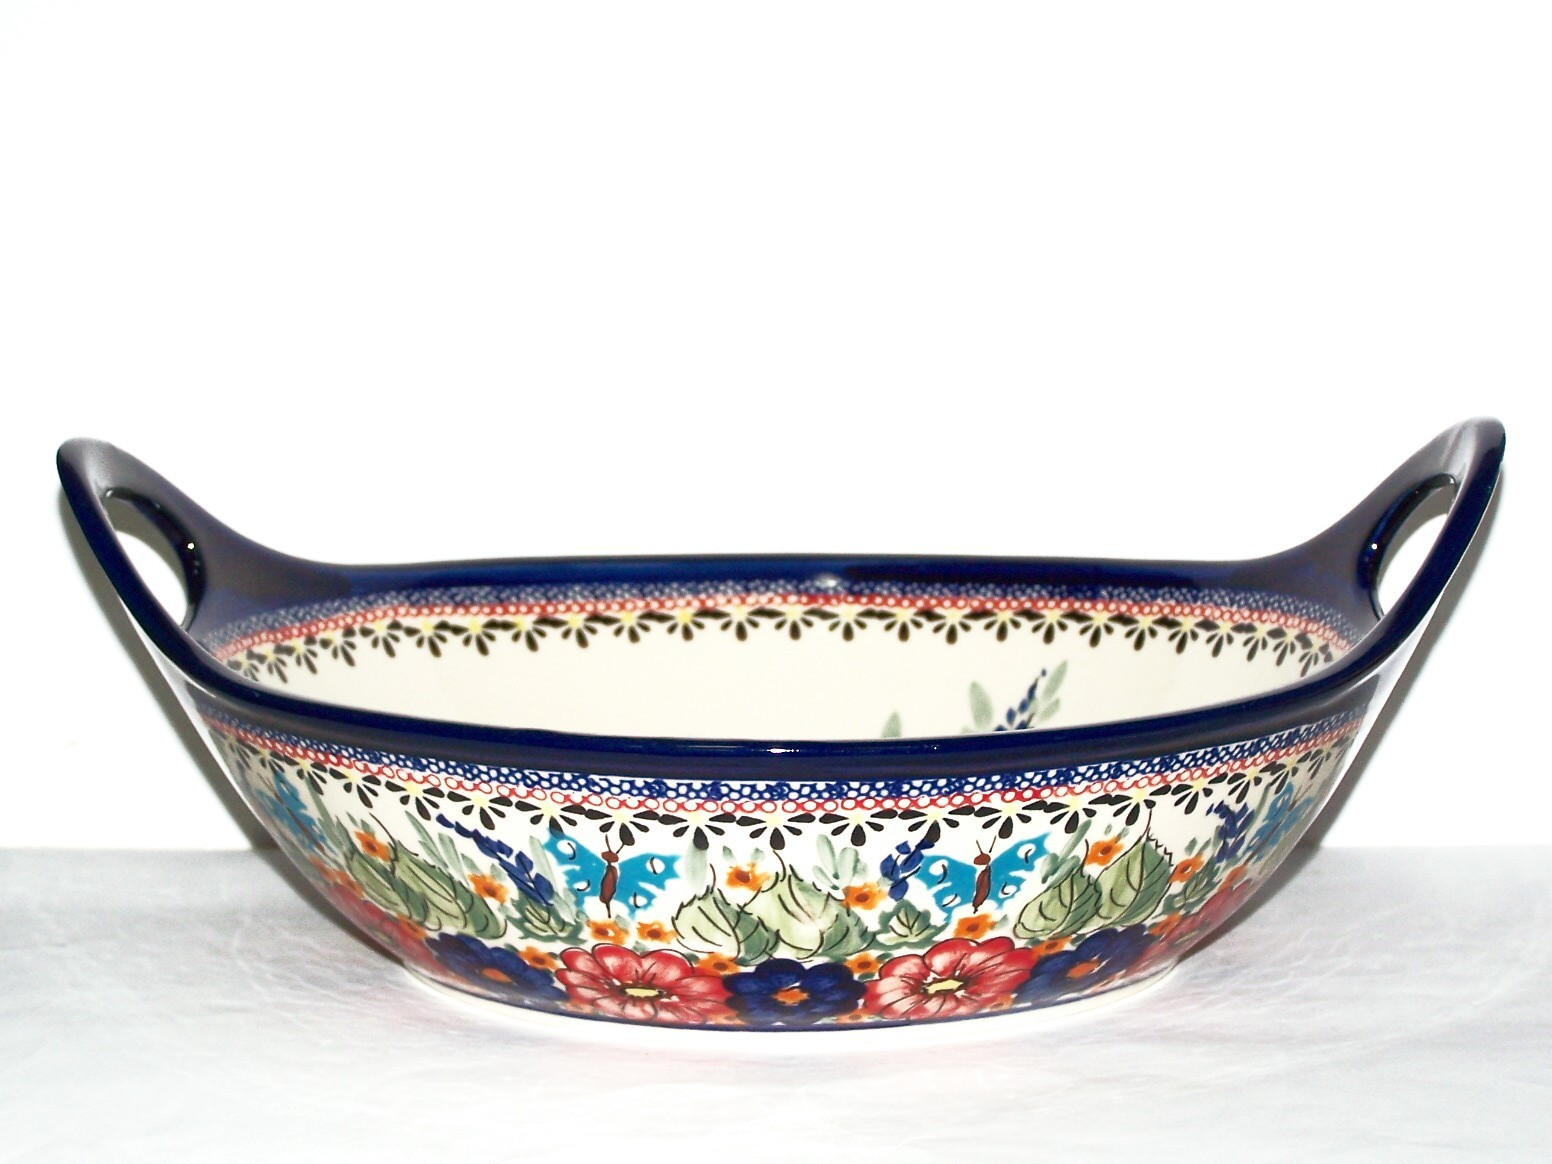 Pottery Avenue  Baker Bowl With Handle |  BUTTERFLY MERRYMAKING